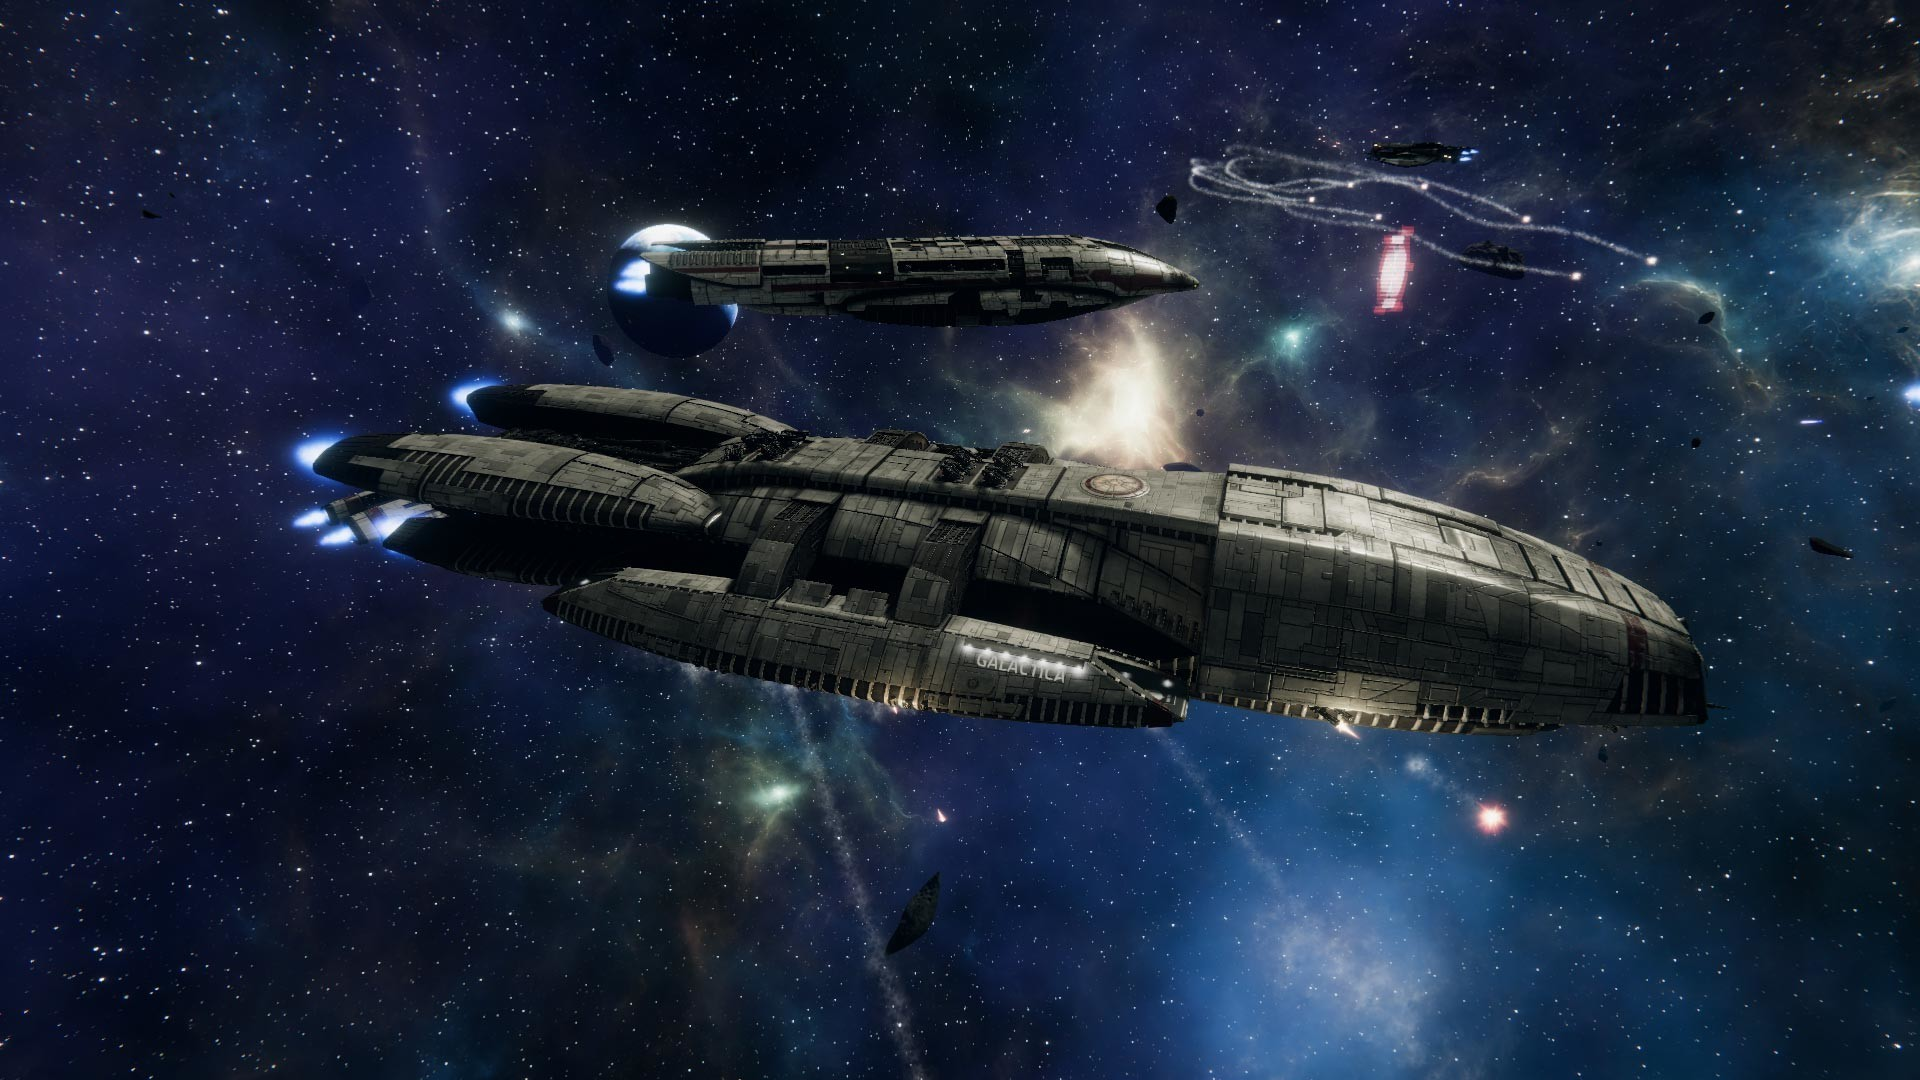 Battlestar Galactica Deadlock: Resurrection DLC